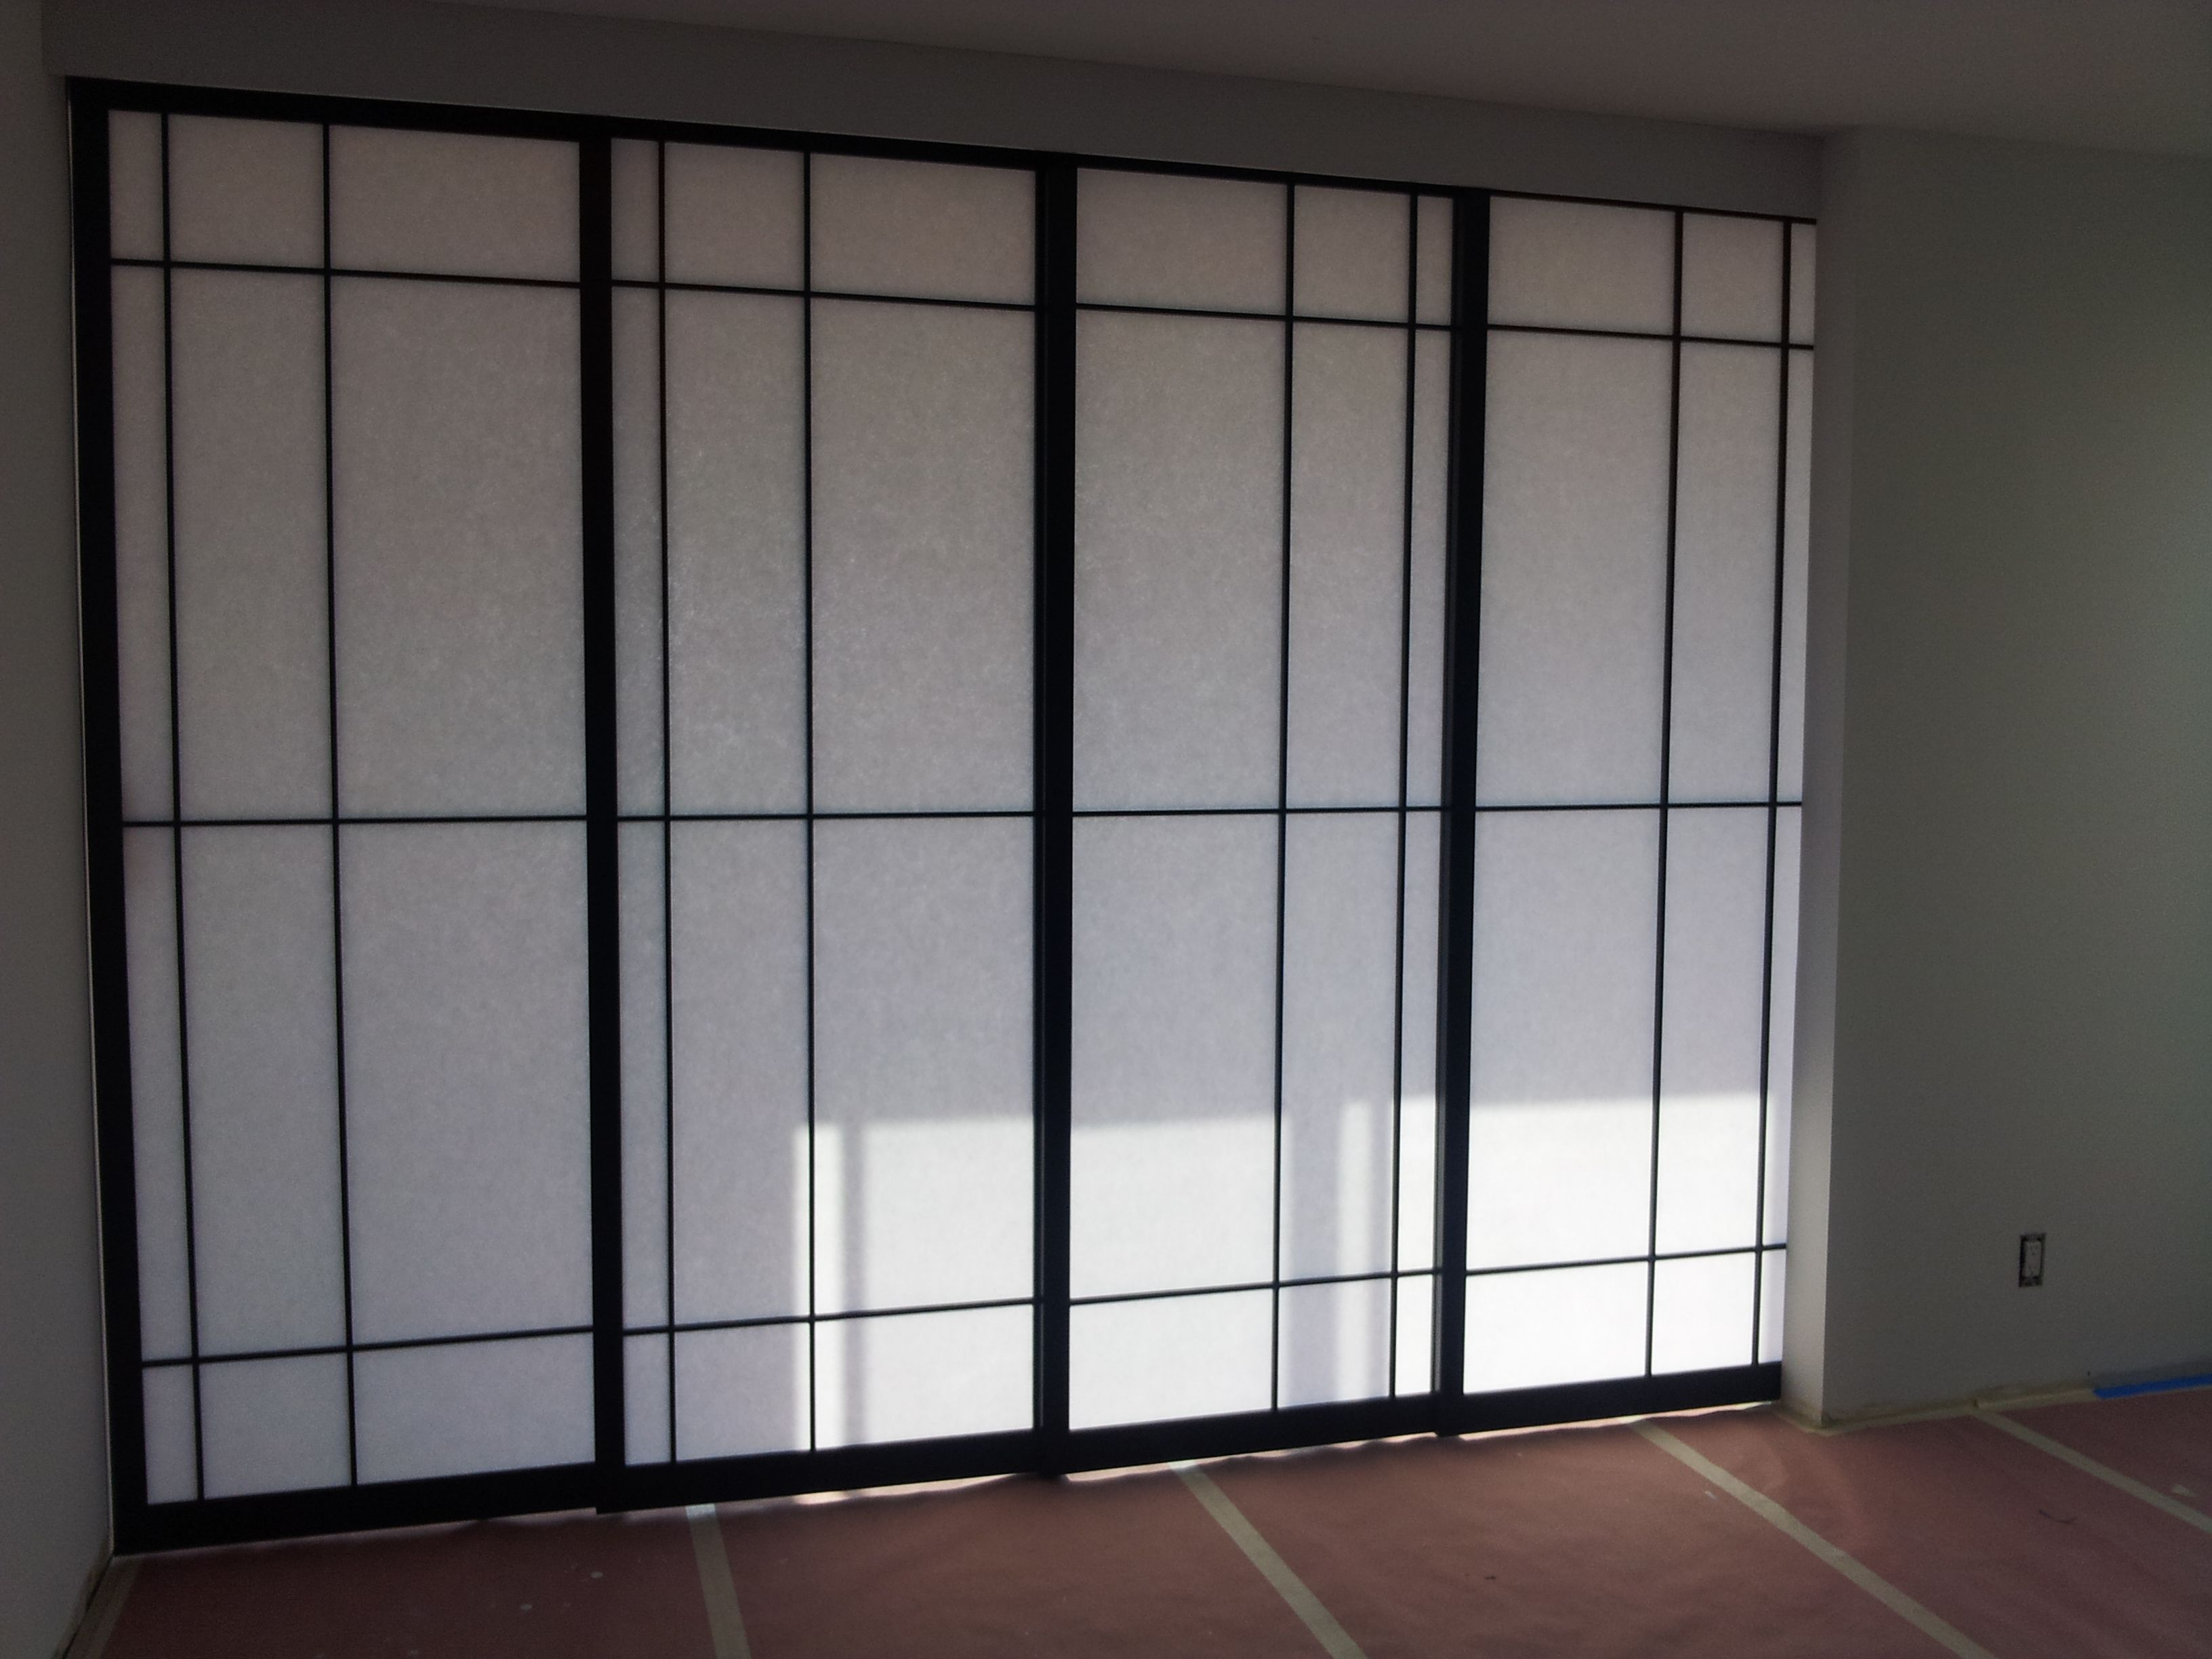 Temporary Walls Home Depot Divider Stunning Room Dividers Lowes Room Dividers Folding Sliding Room Dividers Bamboo Room Divider Fabric Room Dividers